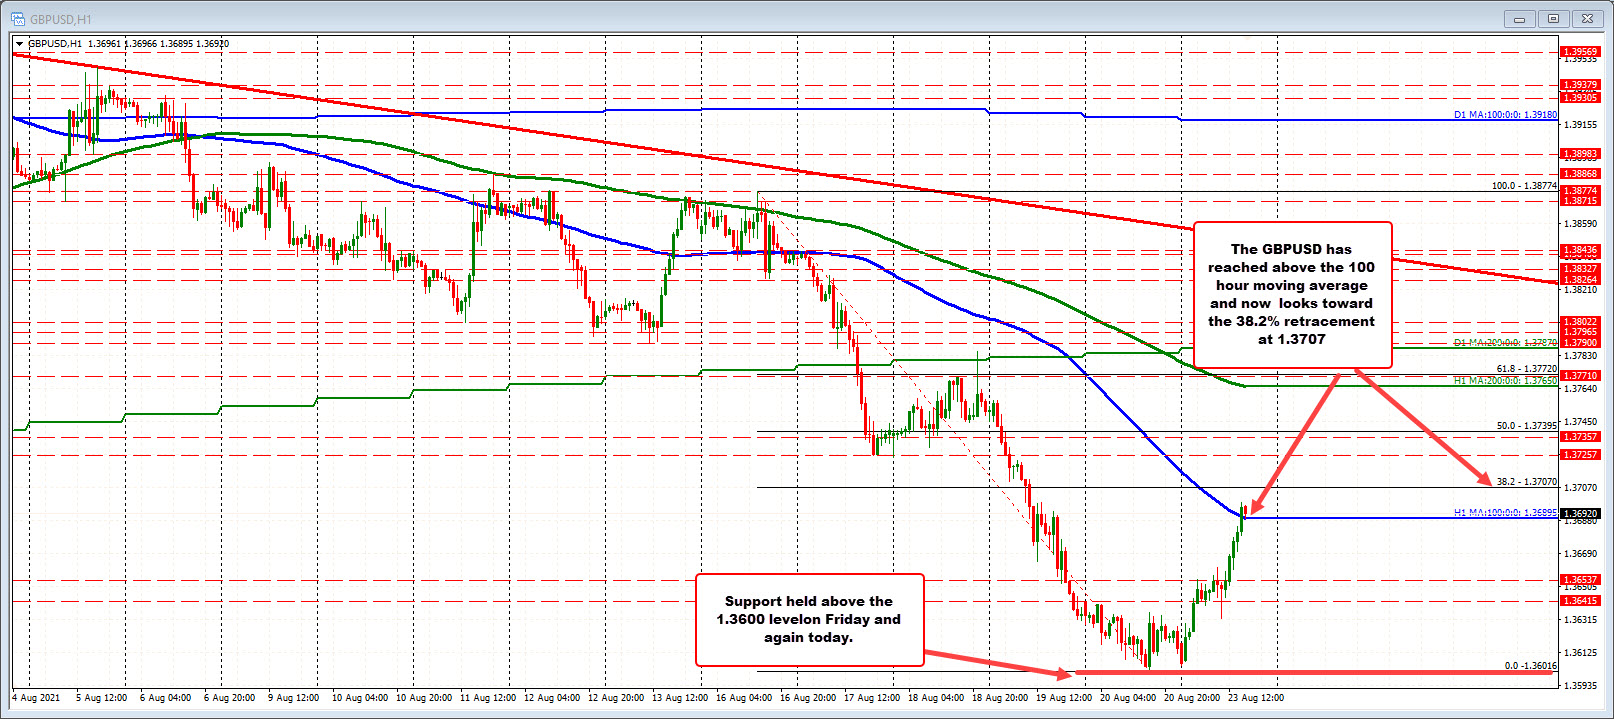 Prices back above its 100 hour moving average_